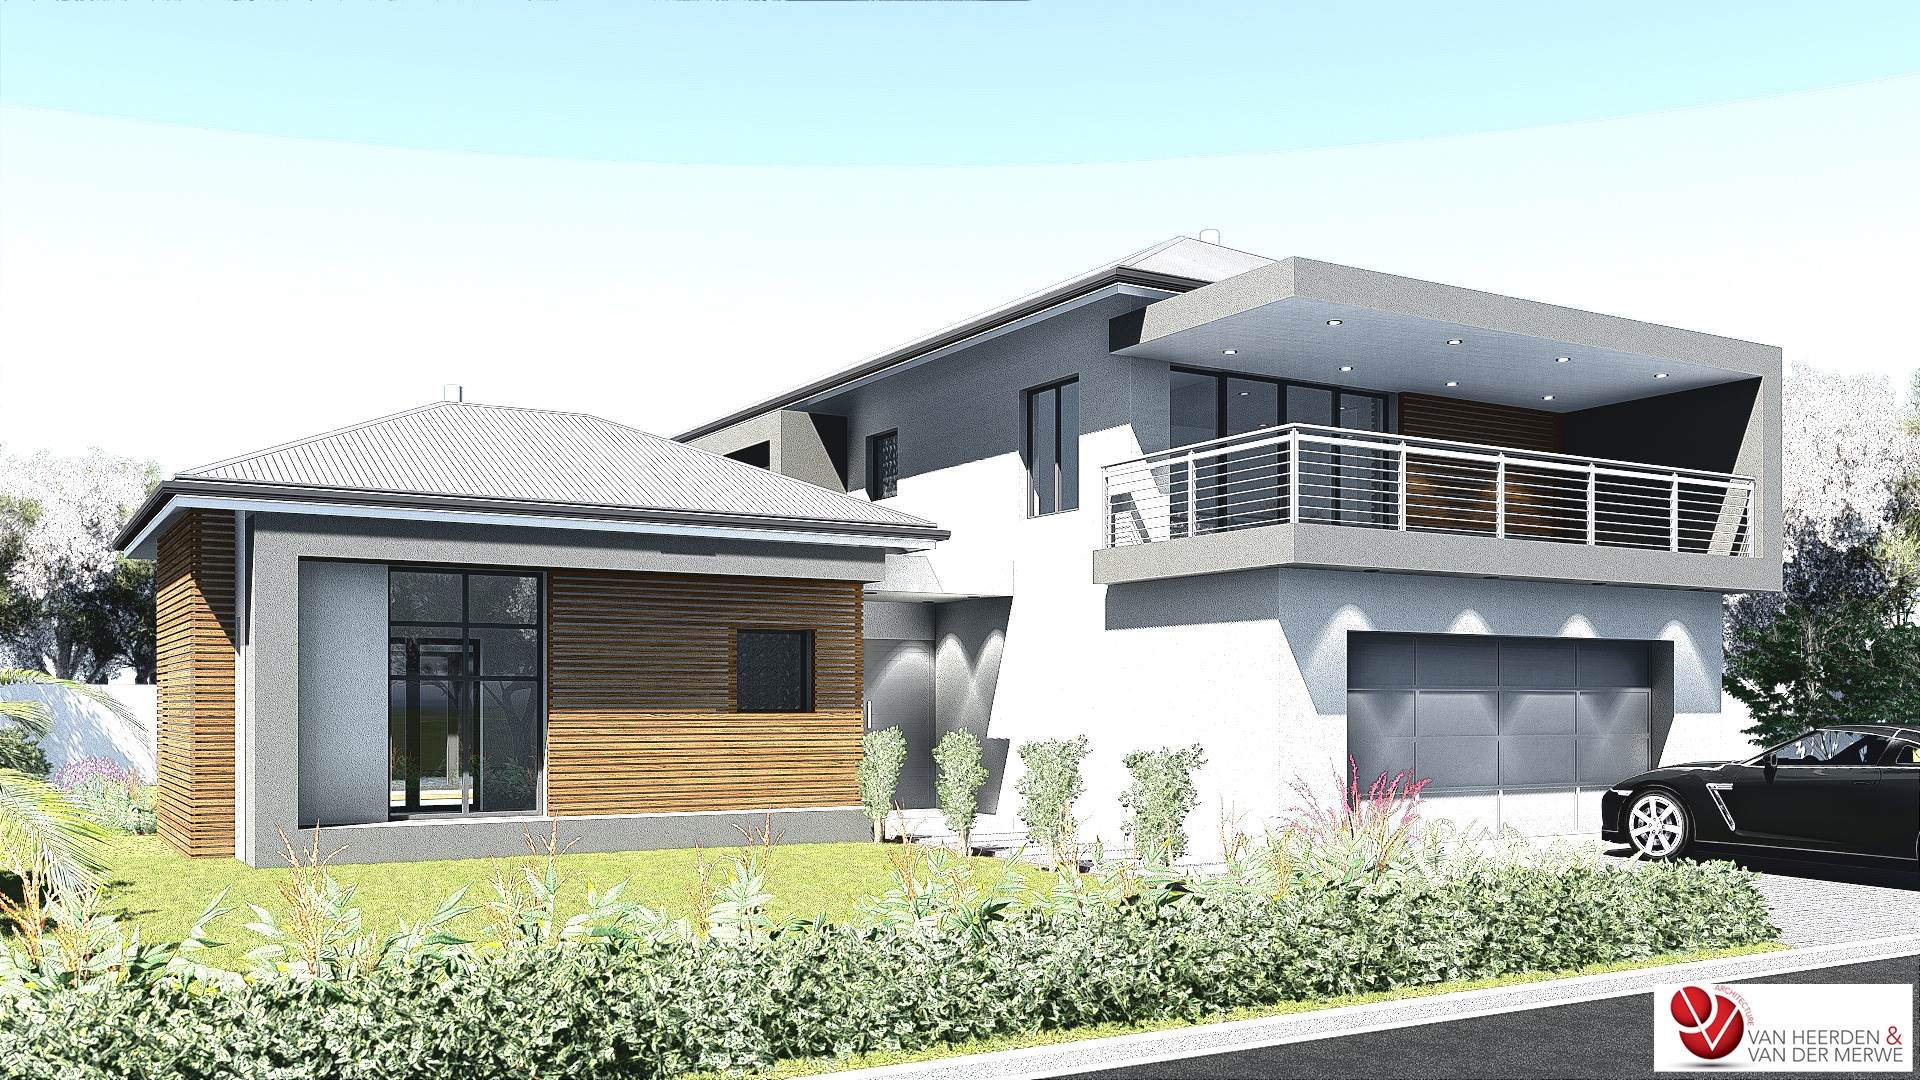 4 BedroomHouse For Sale In Clara Anna Fontein